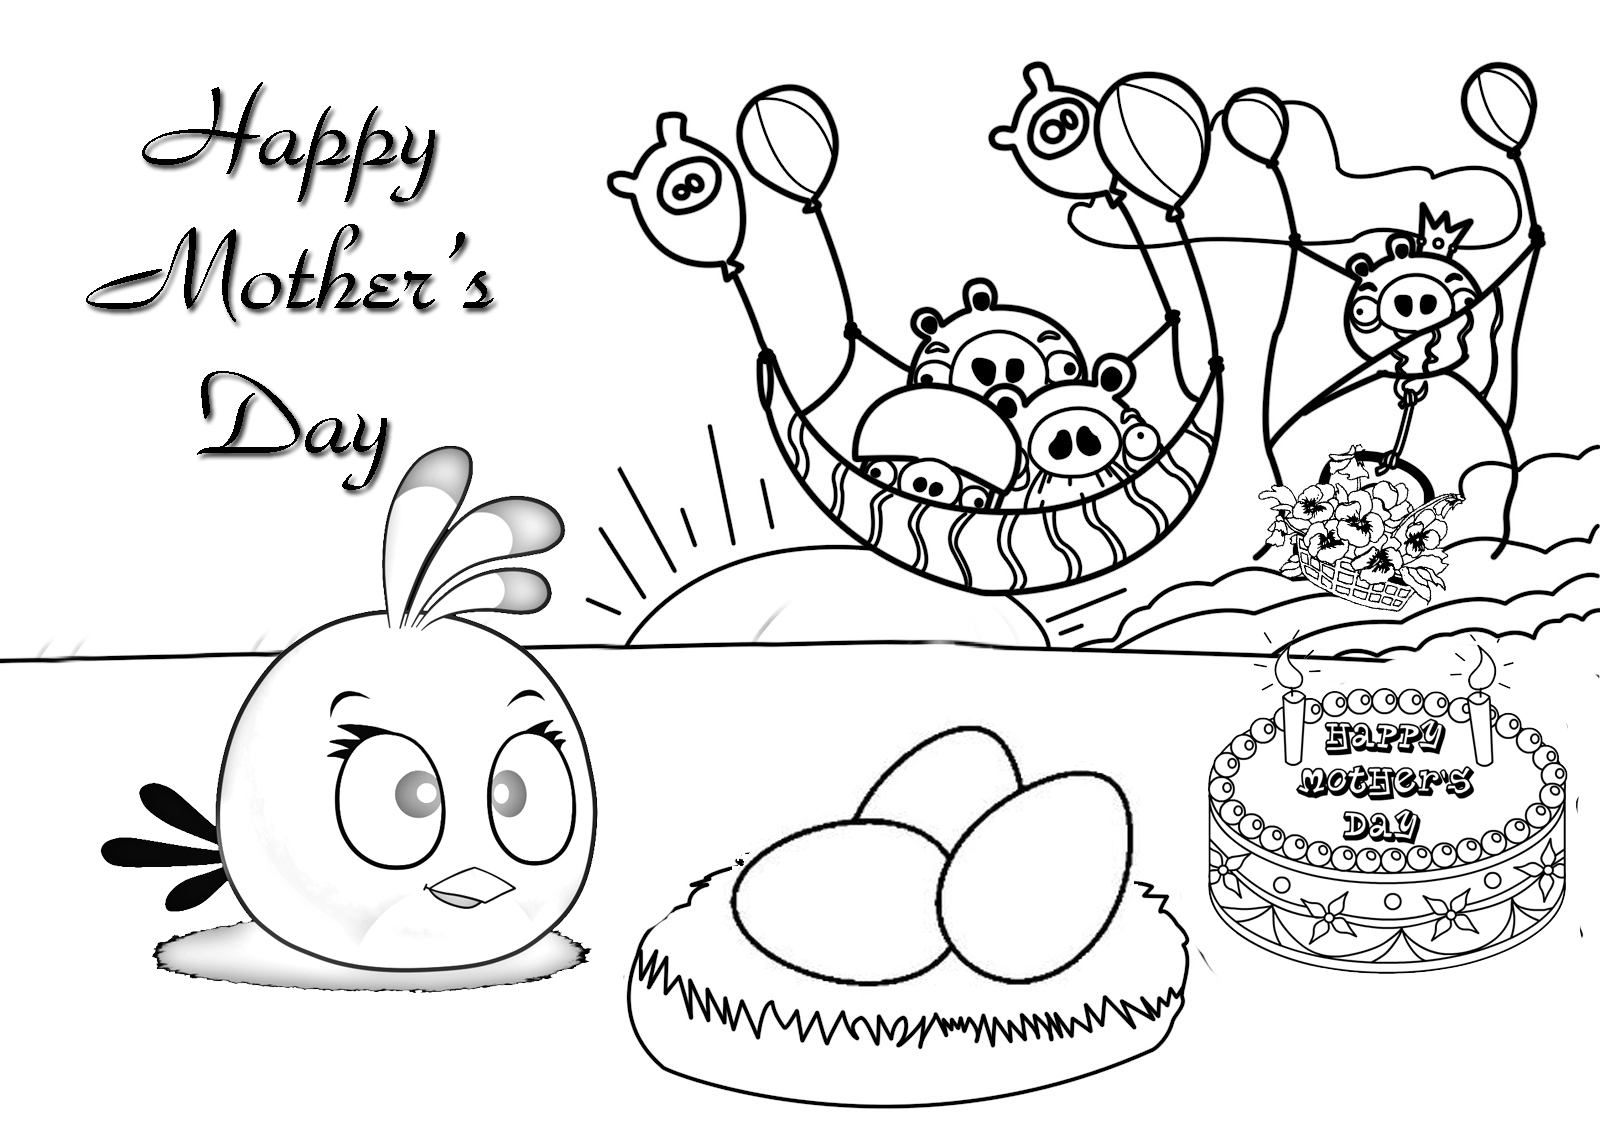 mothers day cards drawing at getdrawings free for personal use Happy Marriage Greetings 1600x1131 mothers day pictures to color